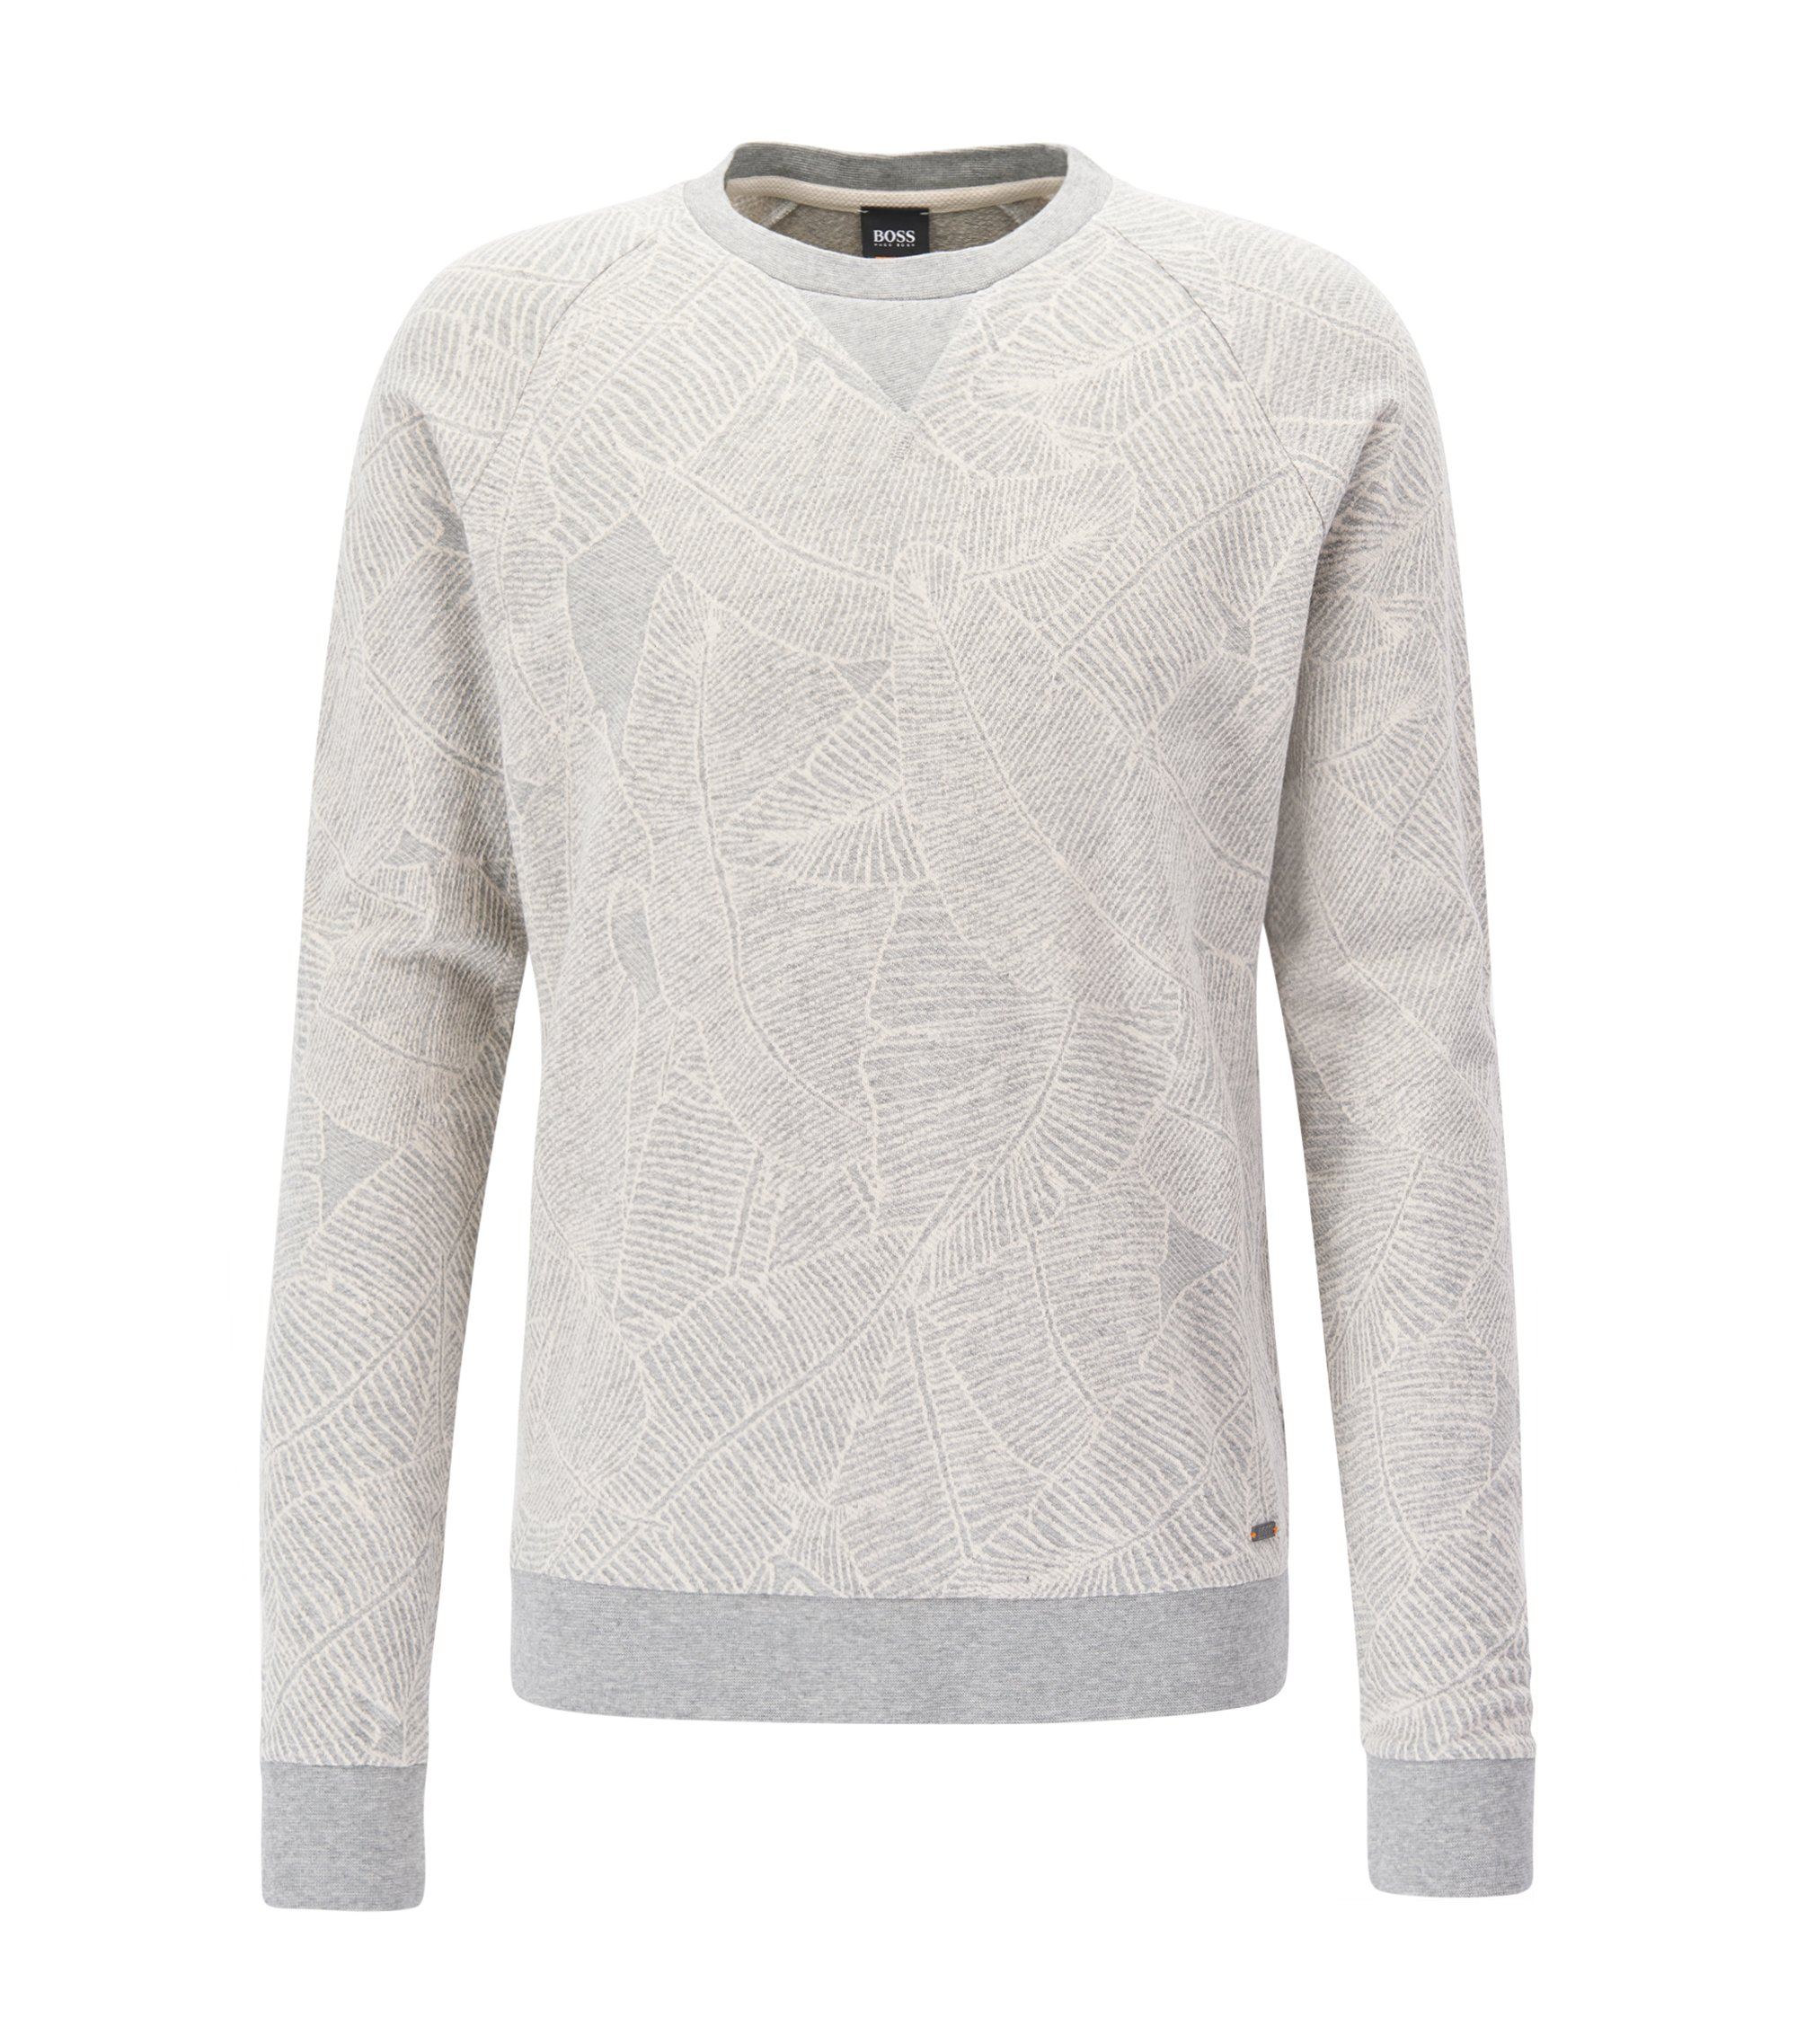 Crew-neck cotton sweater with banana-leaf pattern, Grey